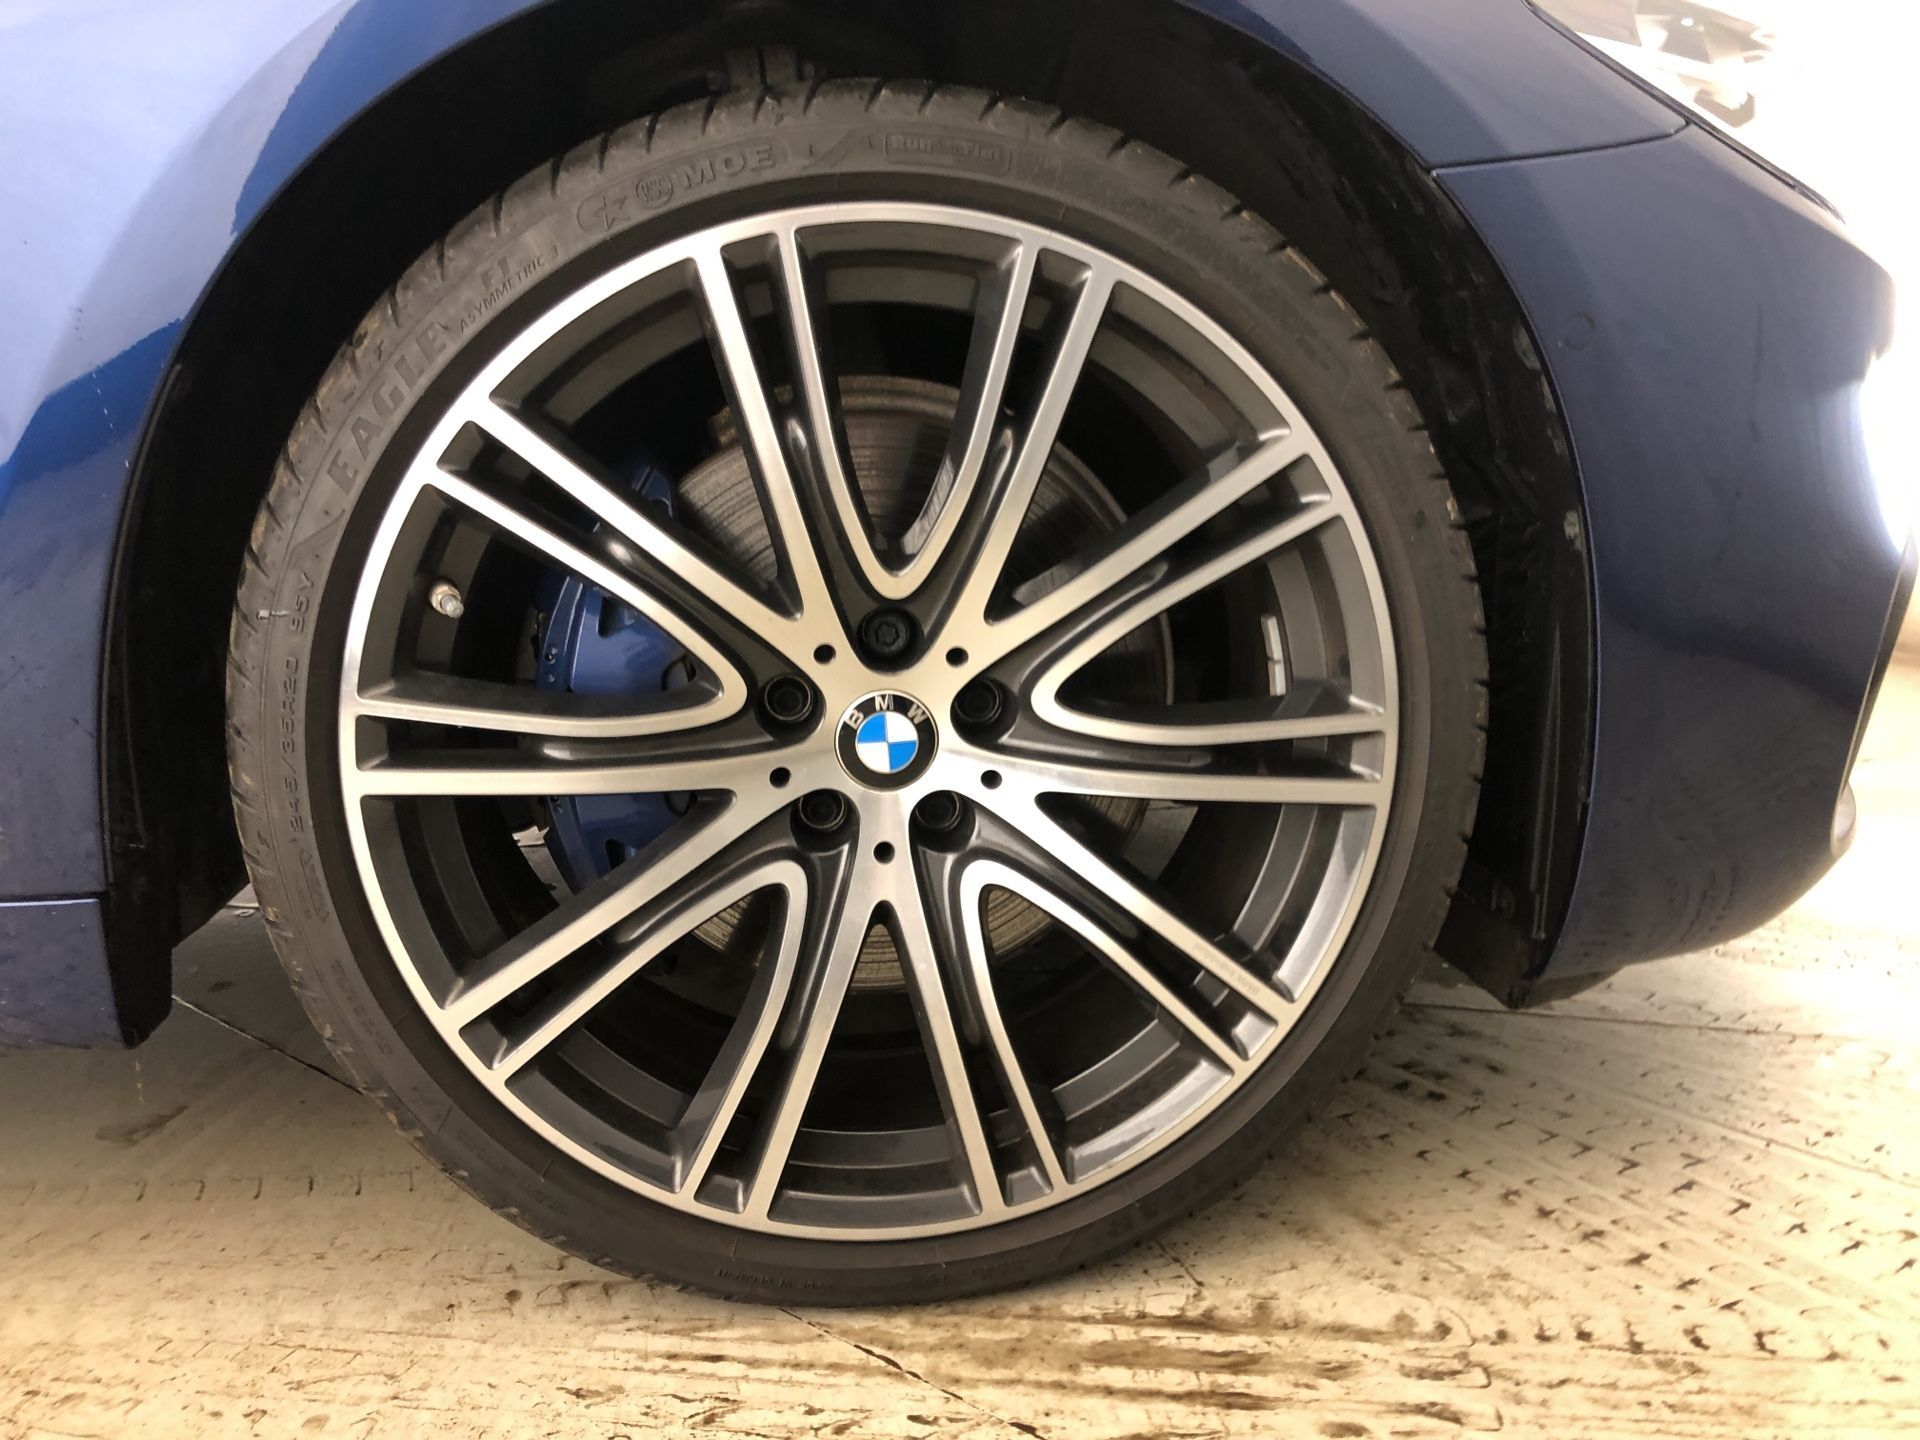 Image 7 - BMW 530e M Sport iPerformance Saloon (YJ68WUP)